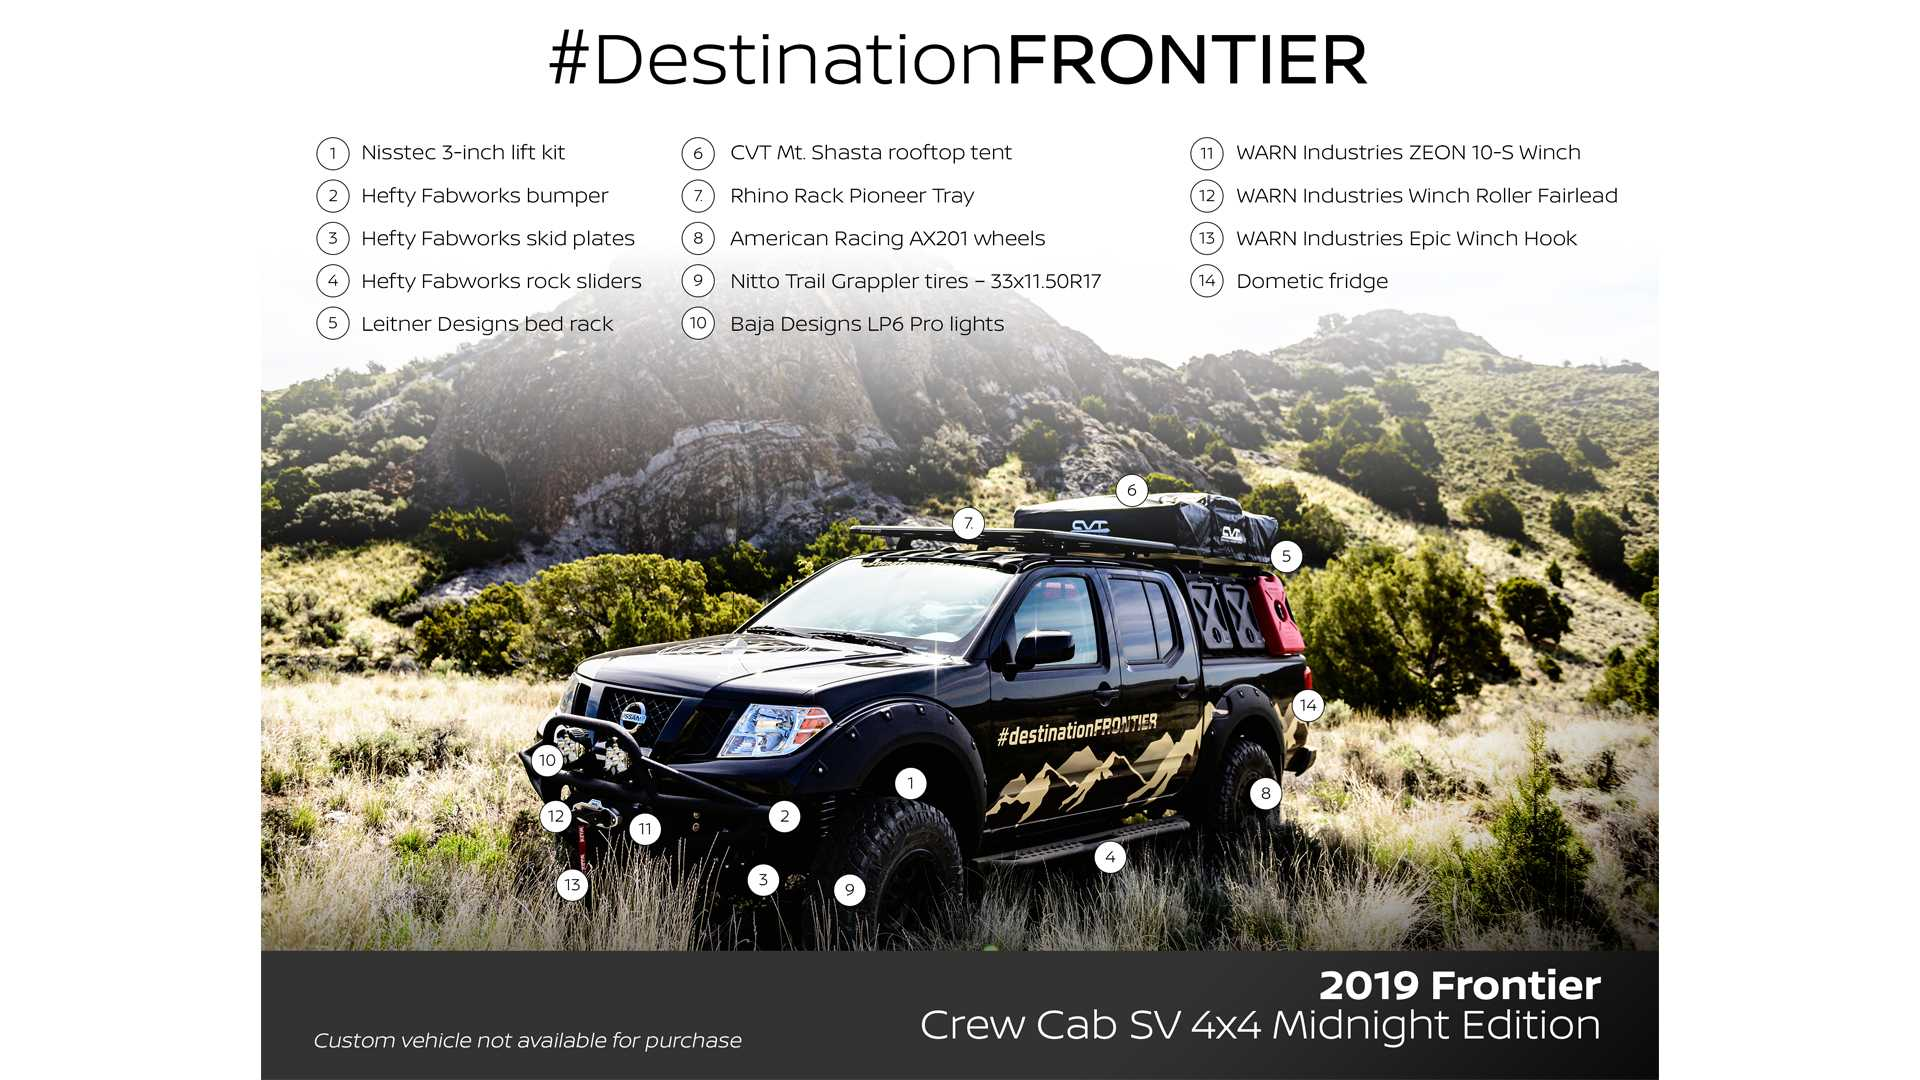 nissan-destination-frontier-5